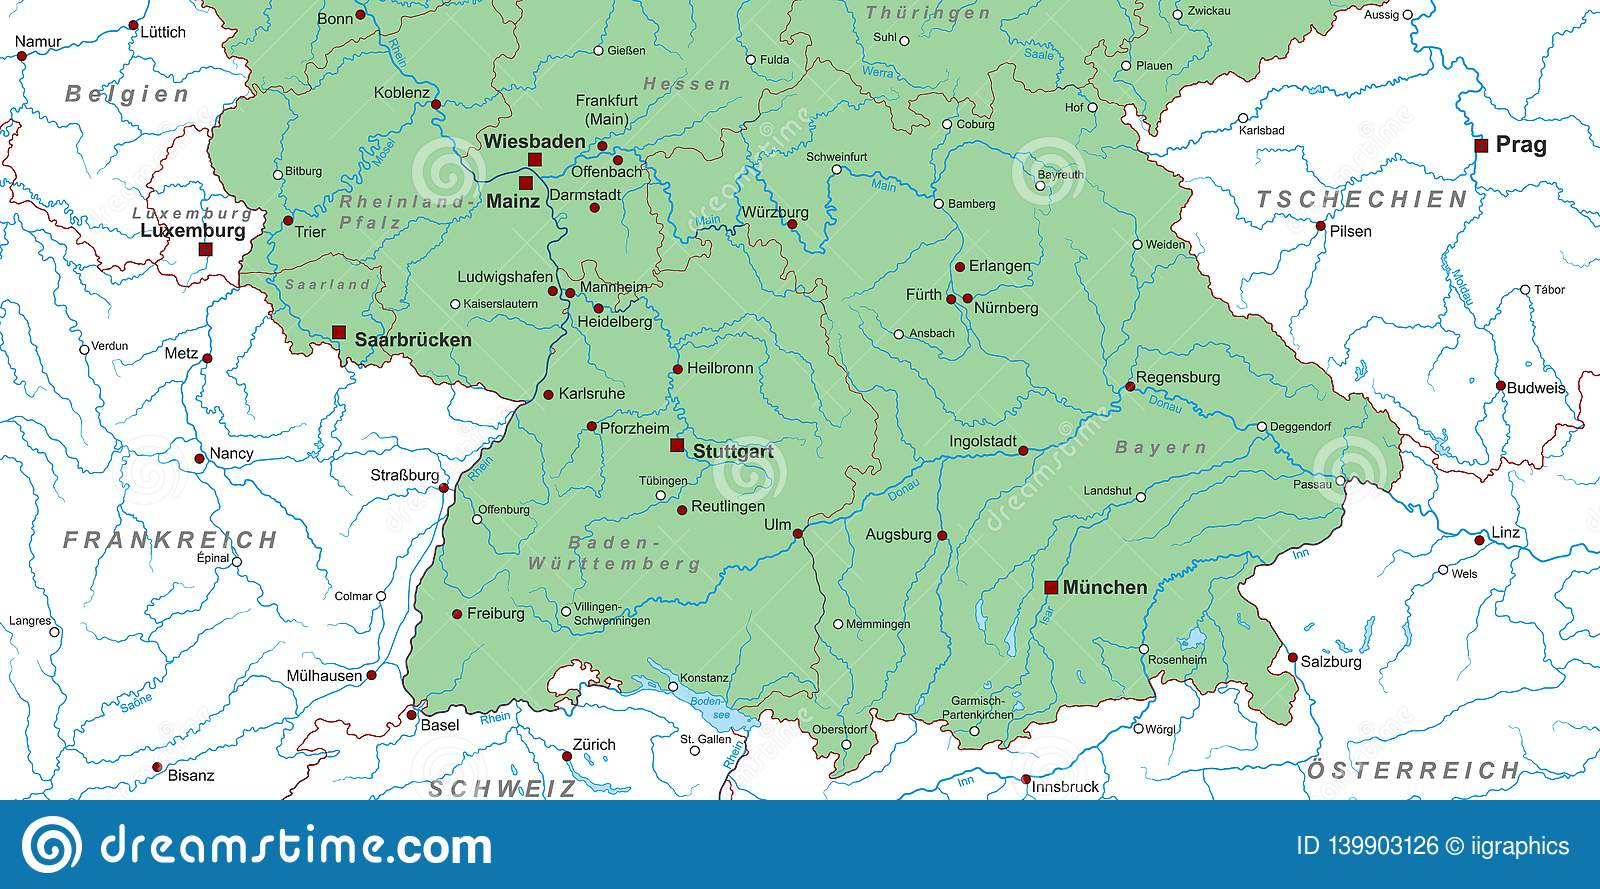 Germany - Map Of Southern Germany High Detailed Stock ...